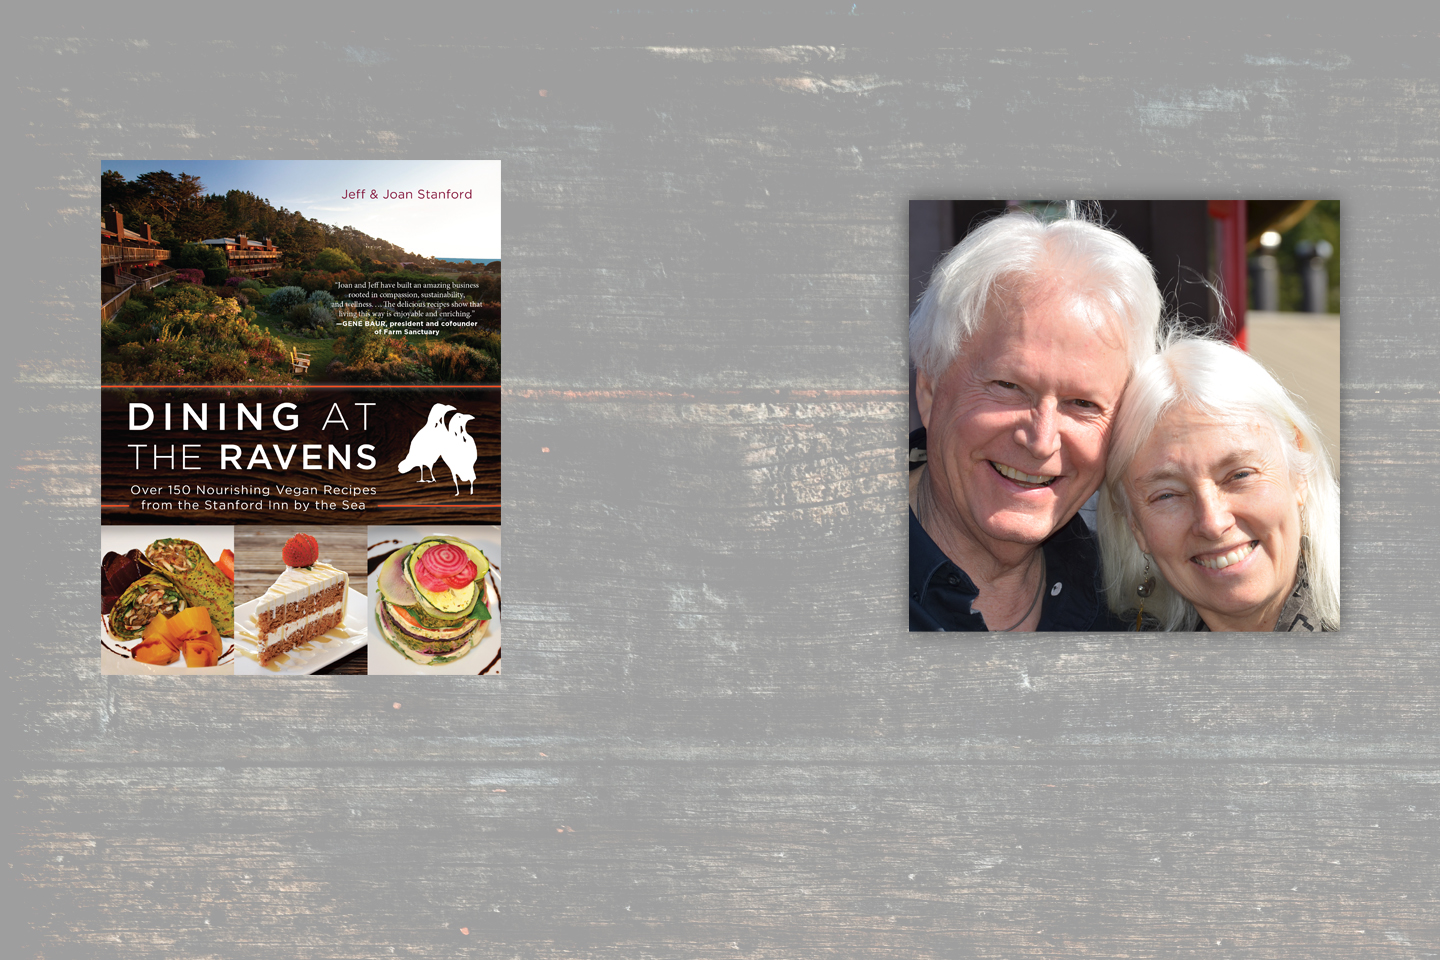 Dining at the Ravens by Jeff & Joan Stanford